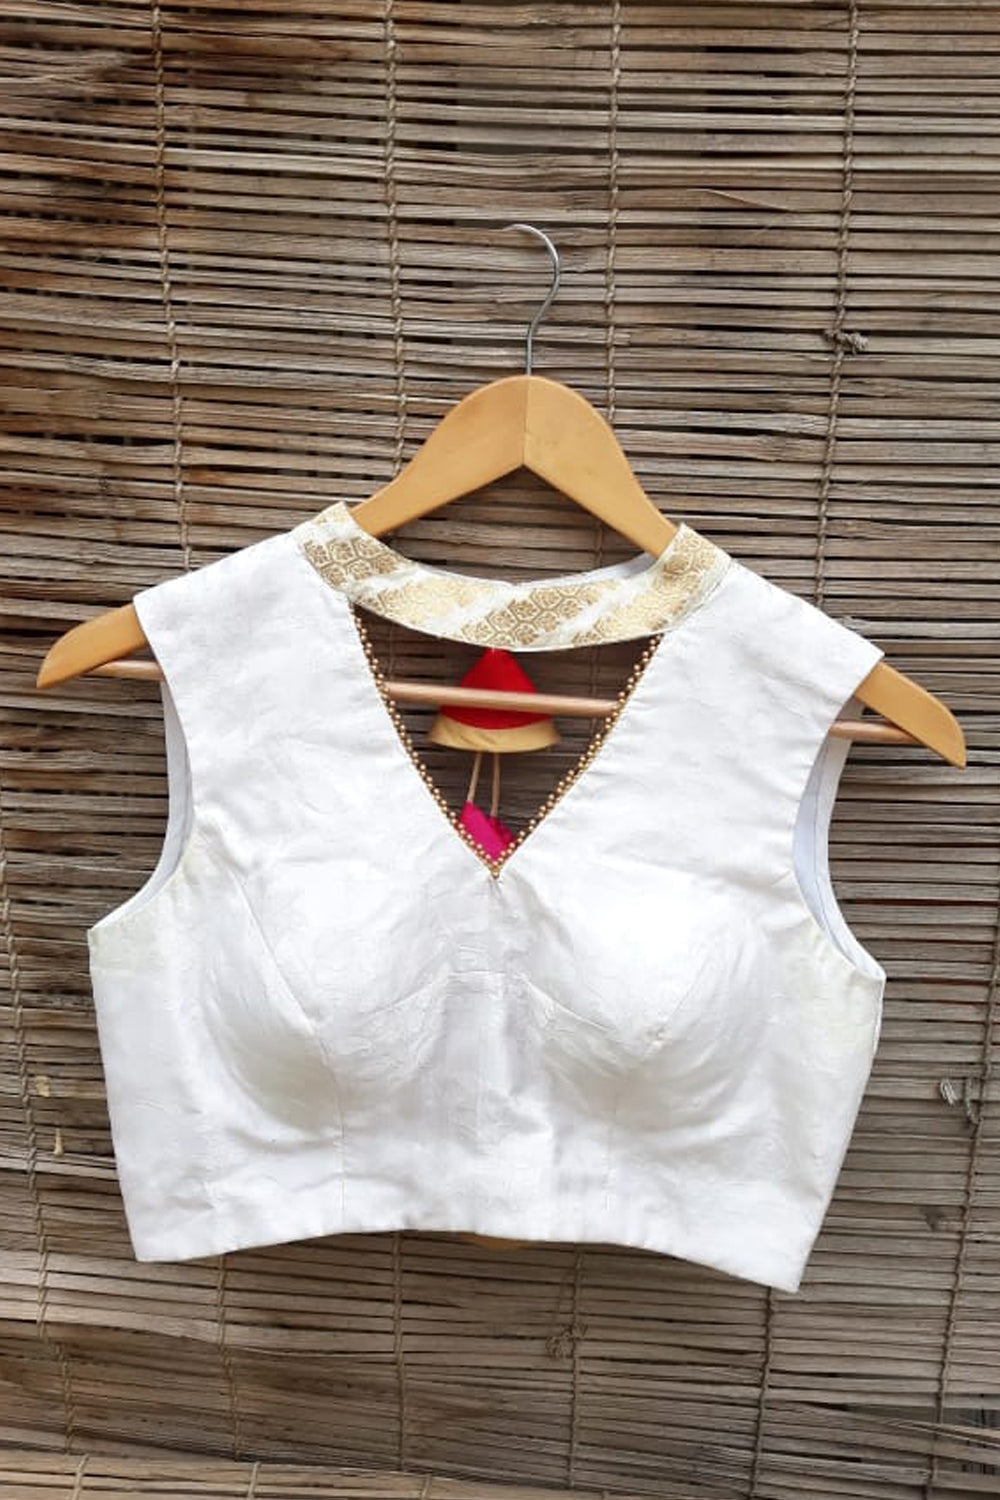 White embossed satin brocade blouse with brocade collar and gold bead edging - House of Blouse